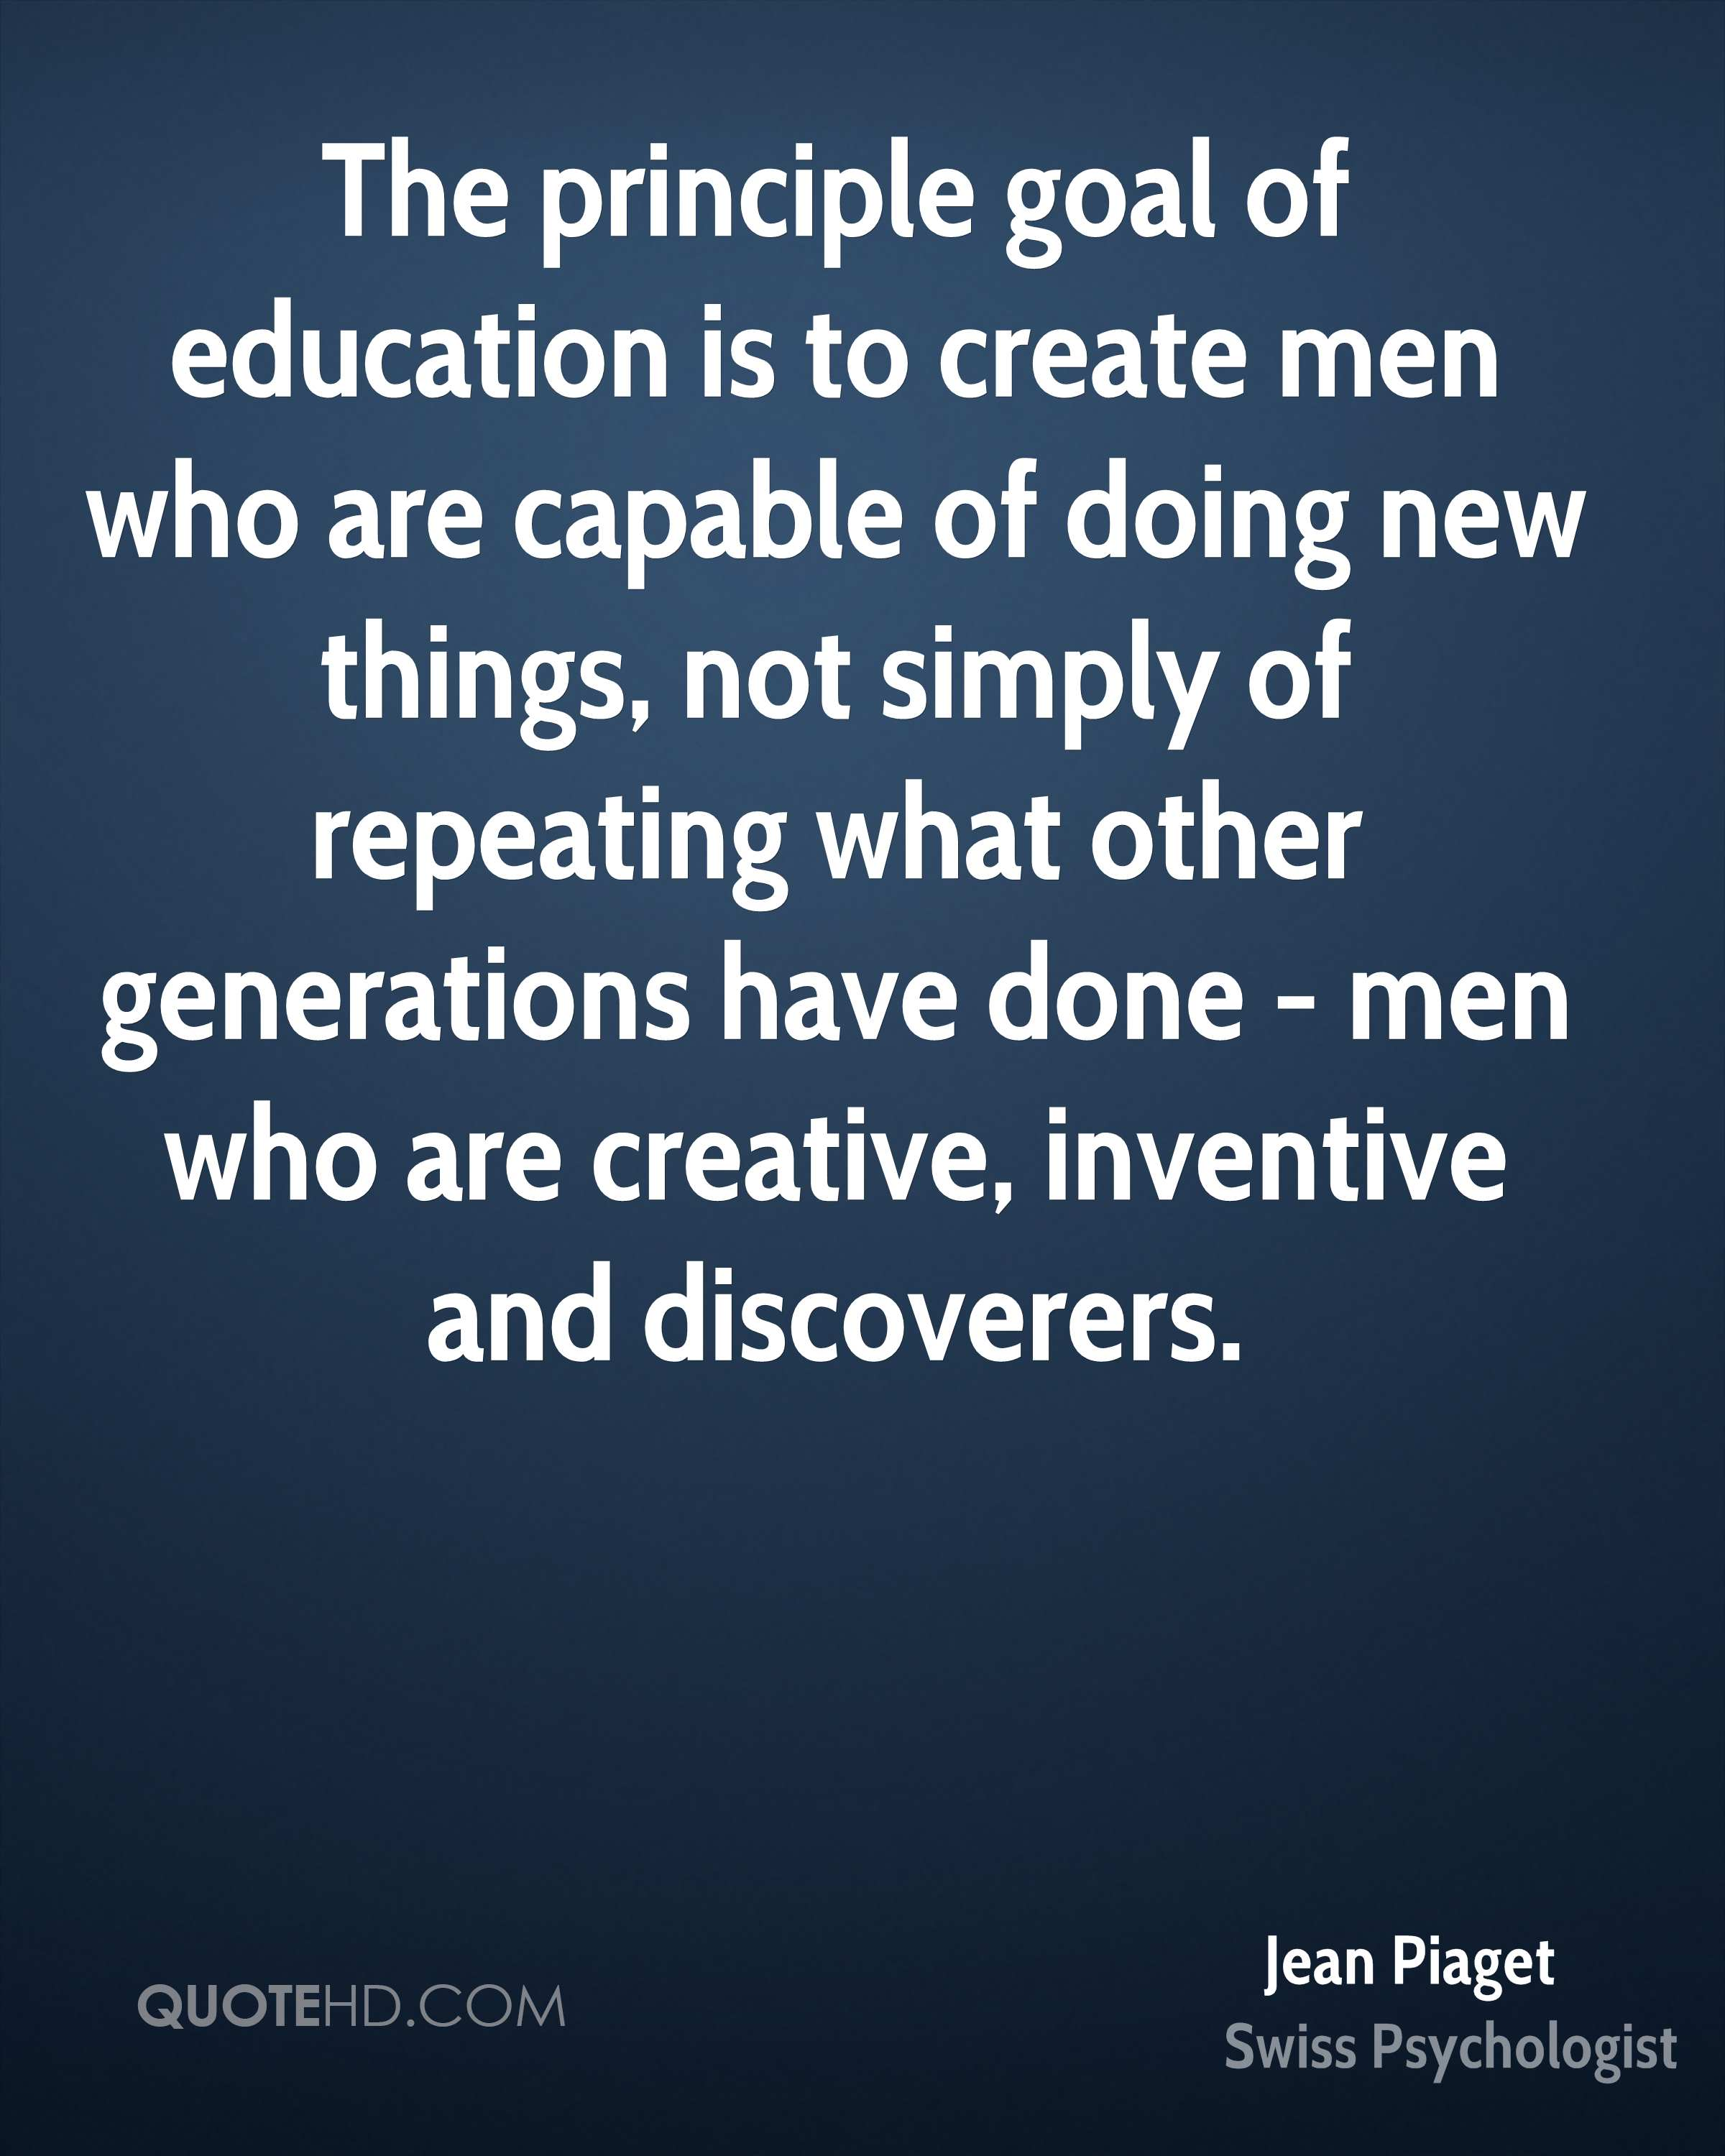 jean piaget quotes quotehd